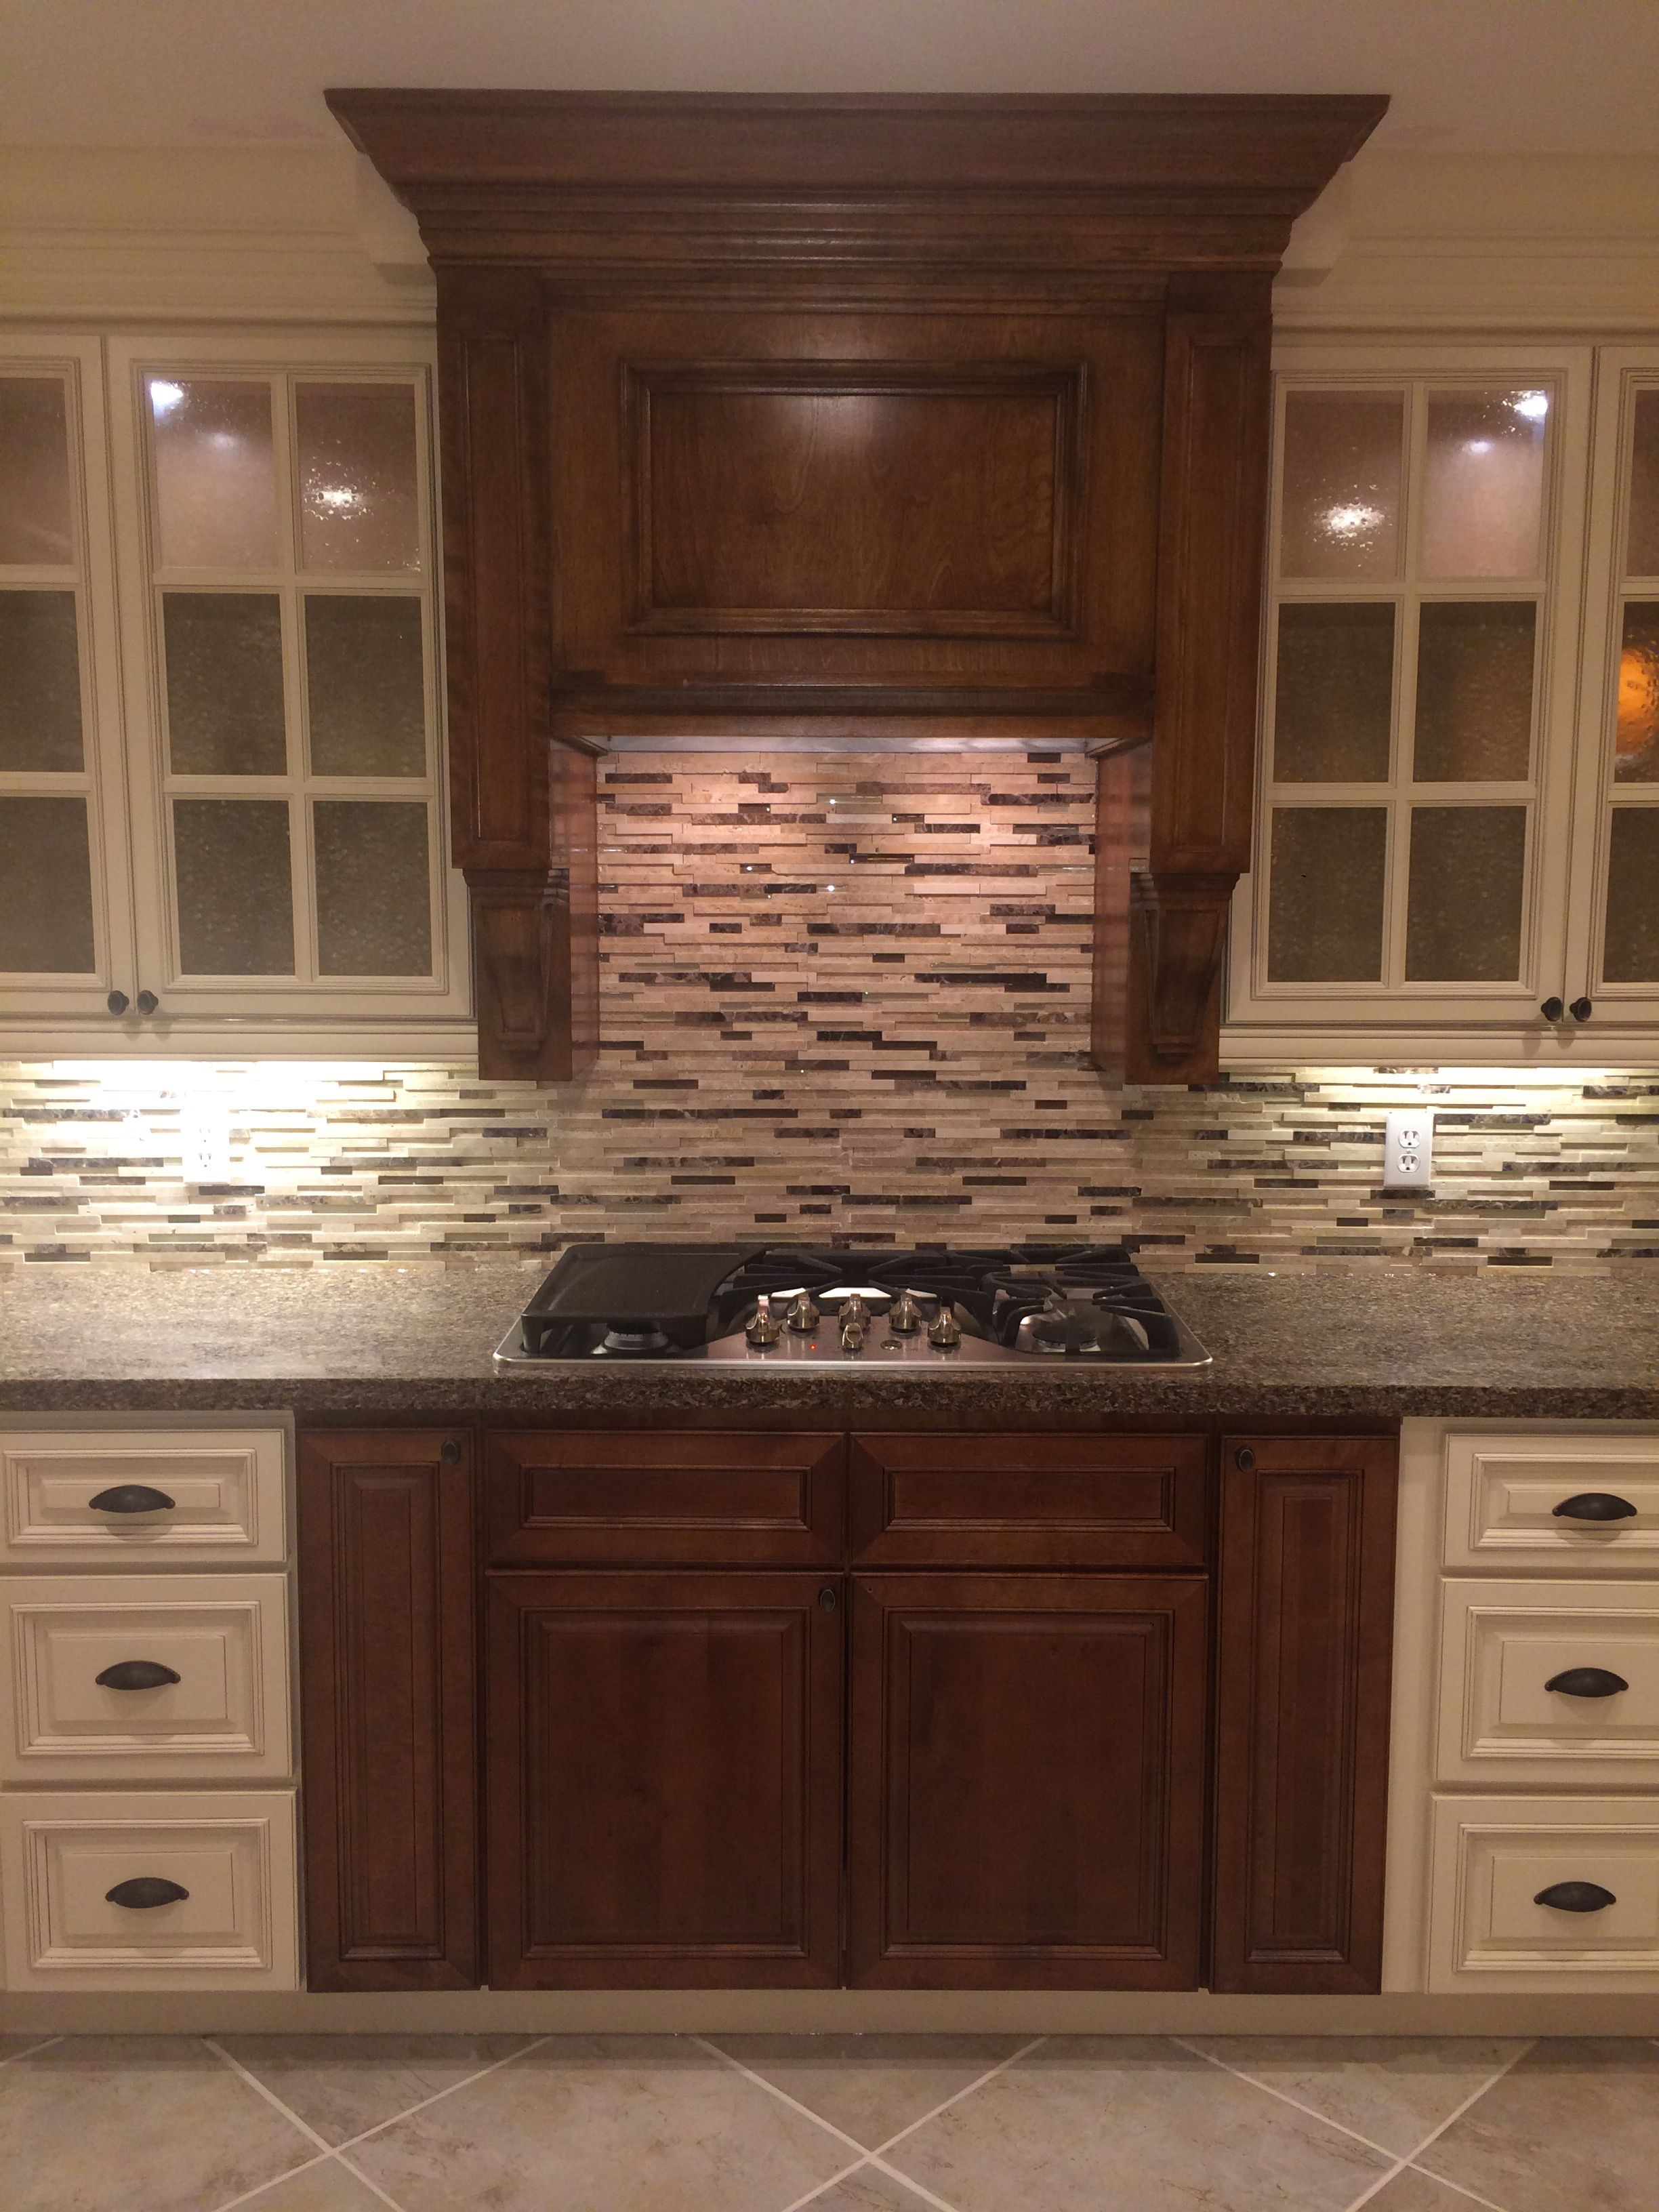 mattamy model homes mattamy homes favorites pinterest immaculate kitchen design by our herculaneum designer jamie brown carriage house abbott cabinets and